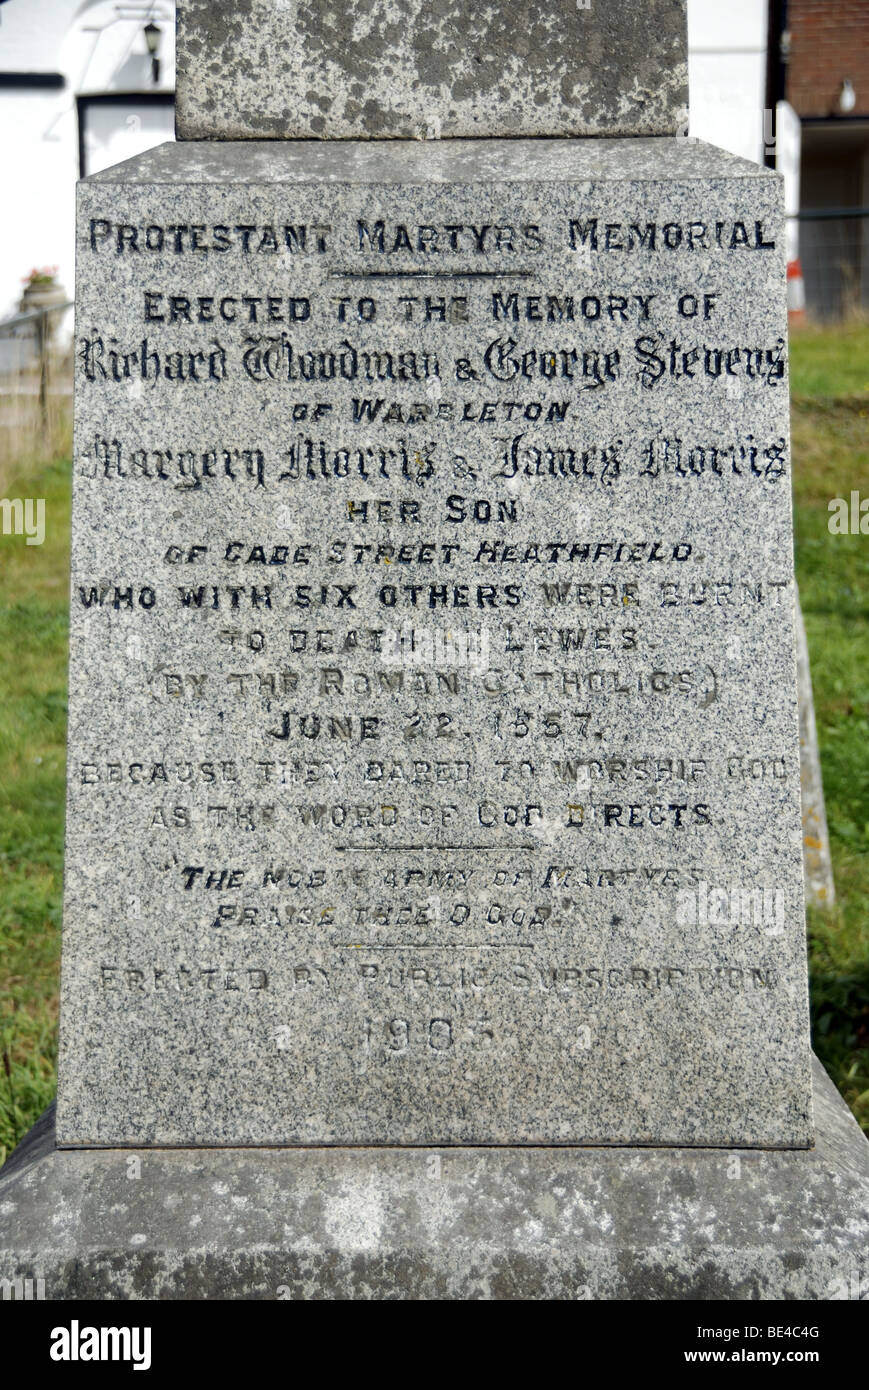 Protestant Martyrs Memorial - Stock Image